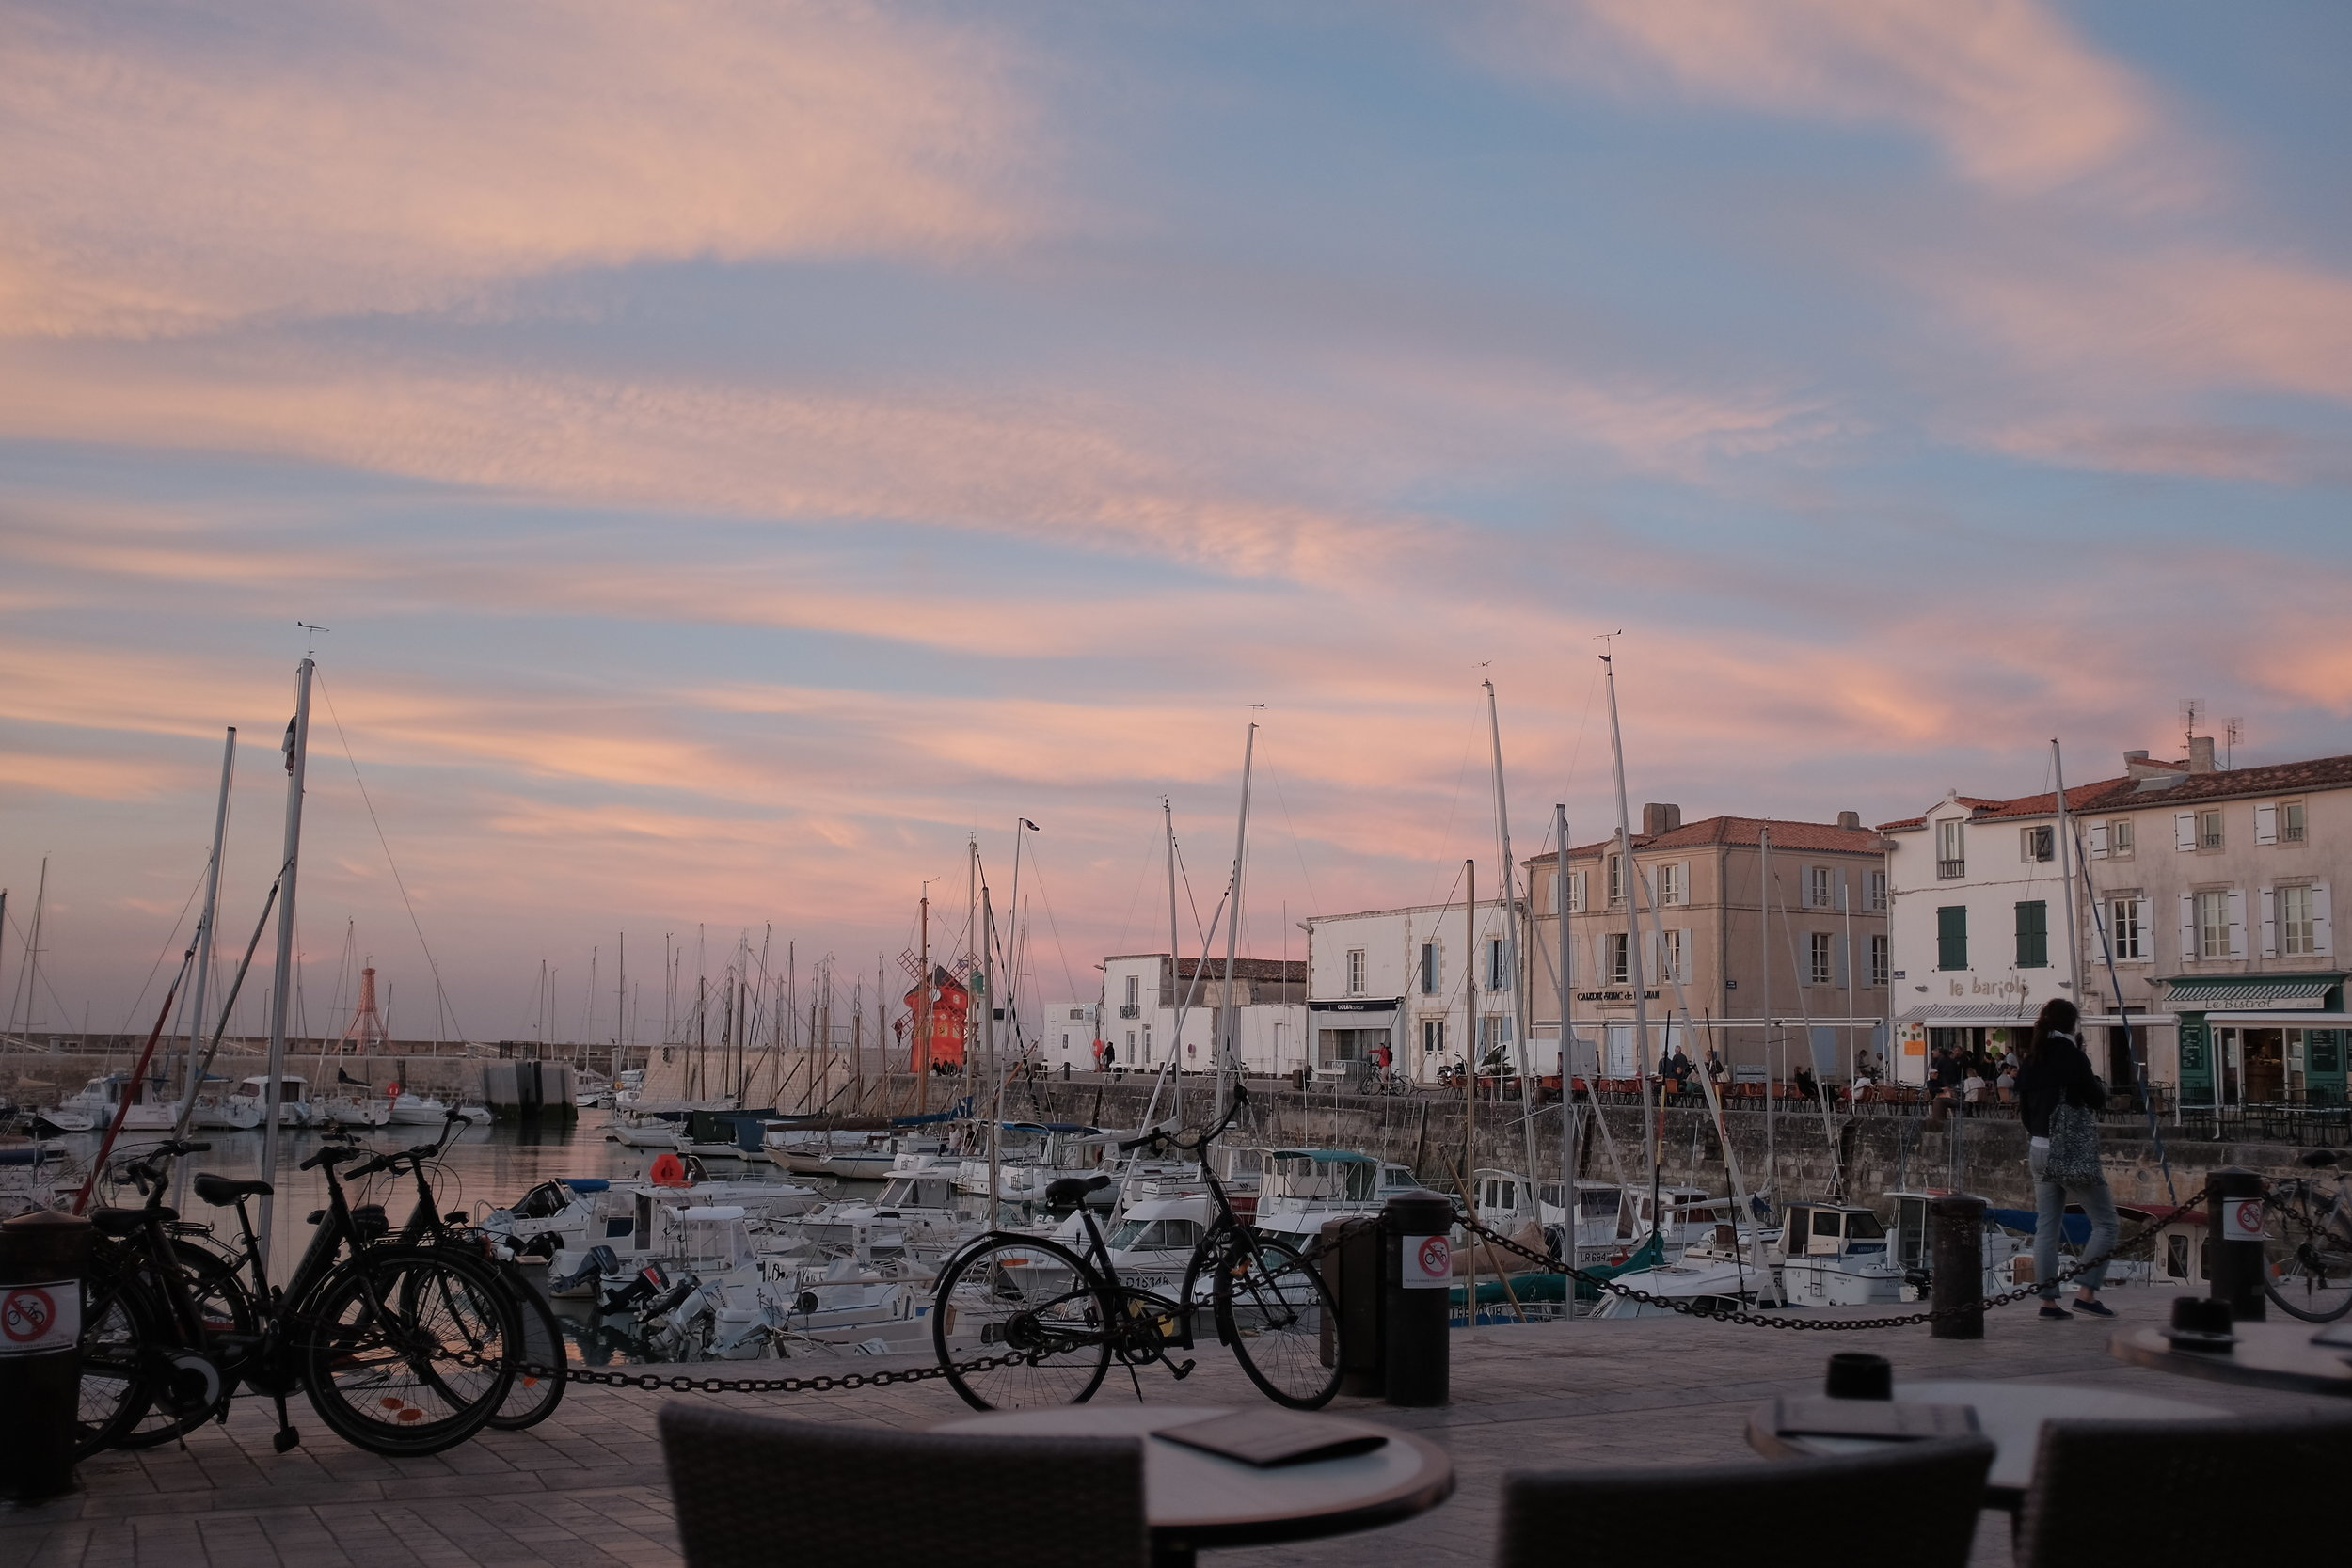 Port of La Flotte en Ré  Ideally located just a few minutes' walk from La Flotte harbour with its abundance of cafes, excellent restaurants and breath-taking medieval food market.